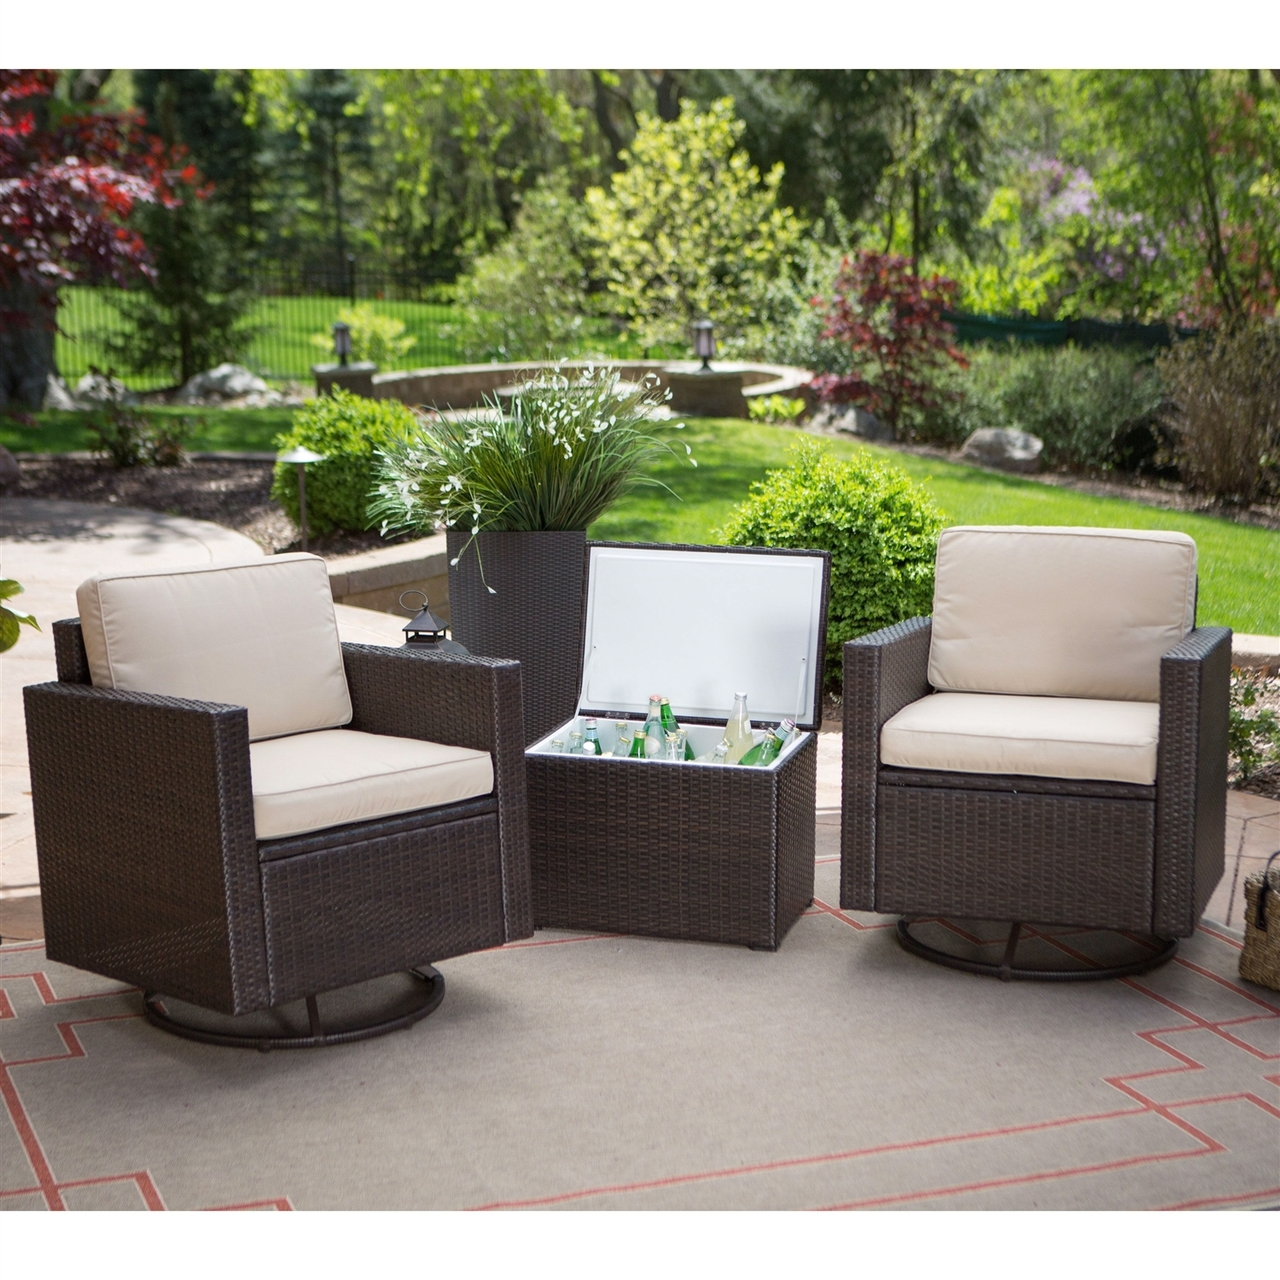 wicker resin patio furniture set chairs cooler side table outdoor with pier and wood accent five below mirrored tray country quilted runners pottery barn square coffee one area